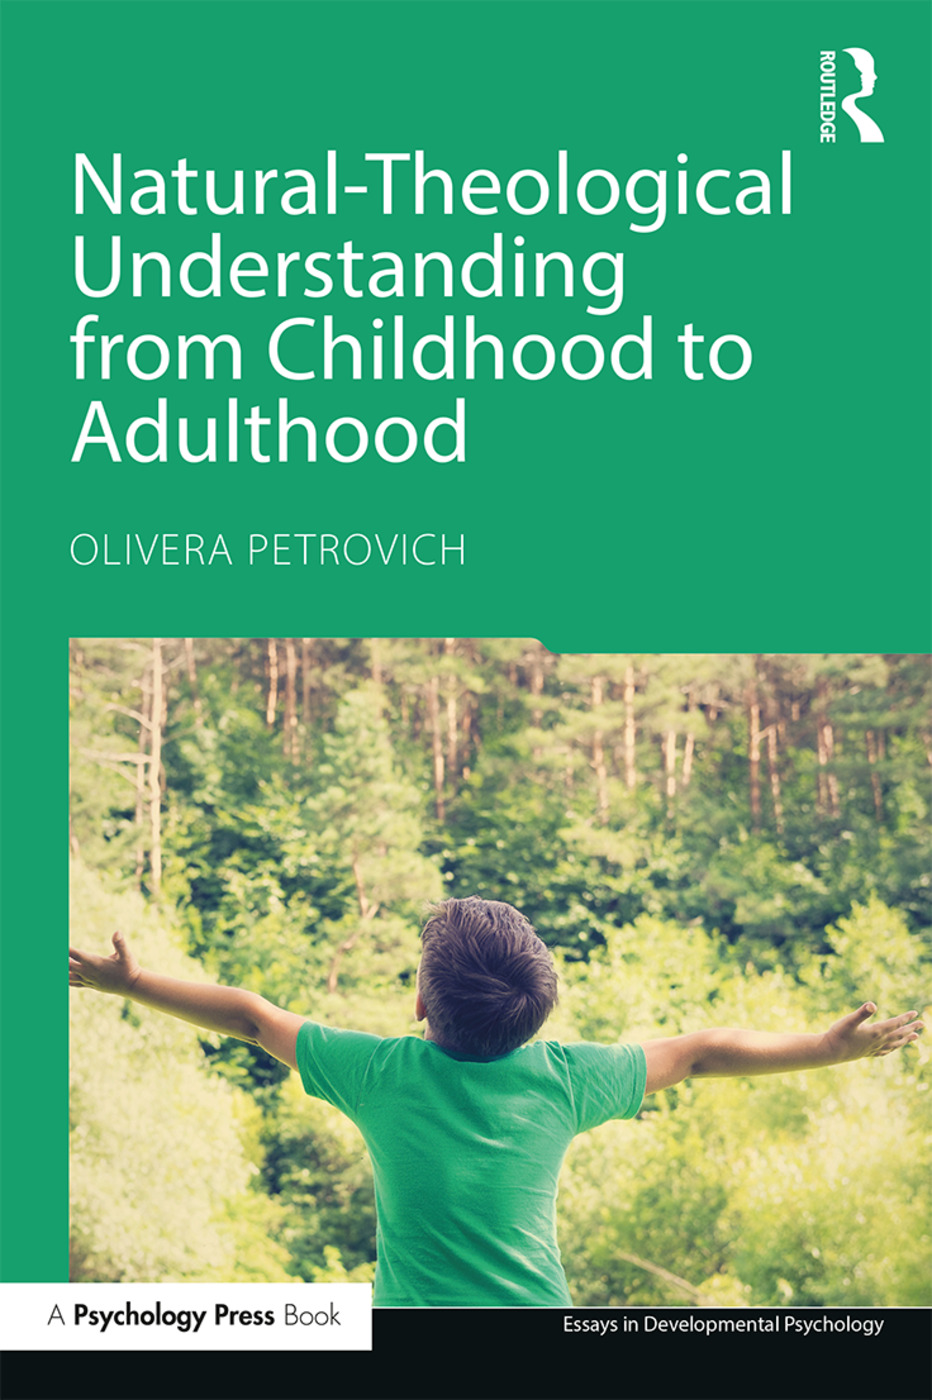 Natural-Theological Understanding from Childhood to Adulthood